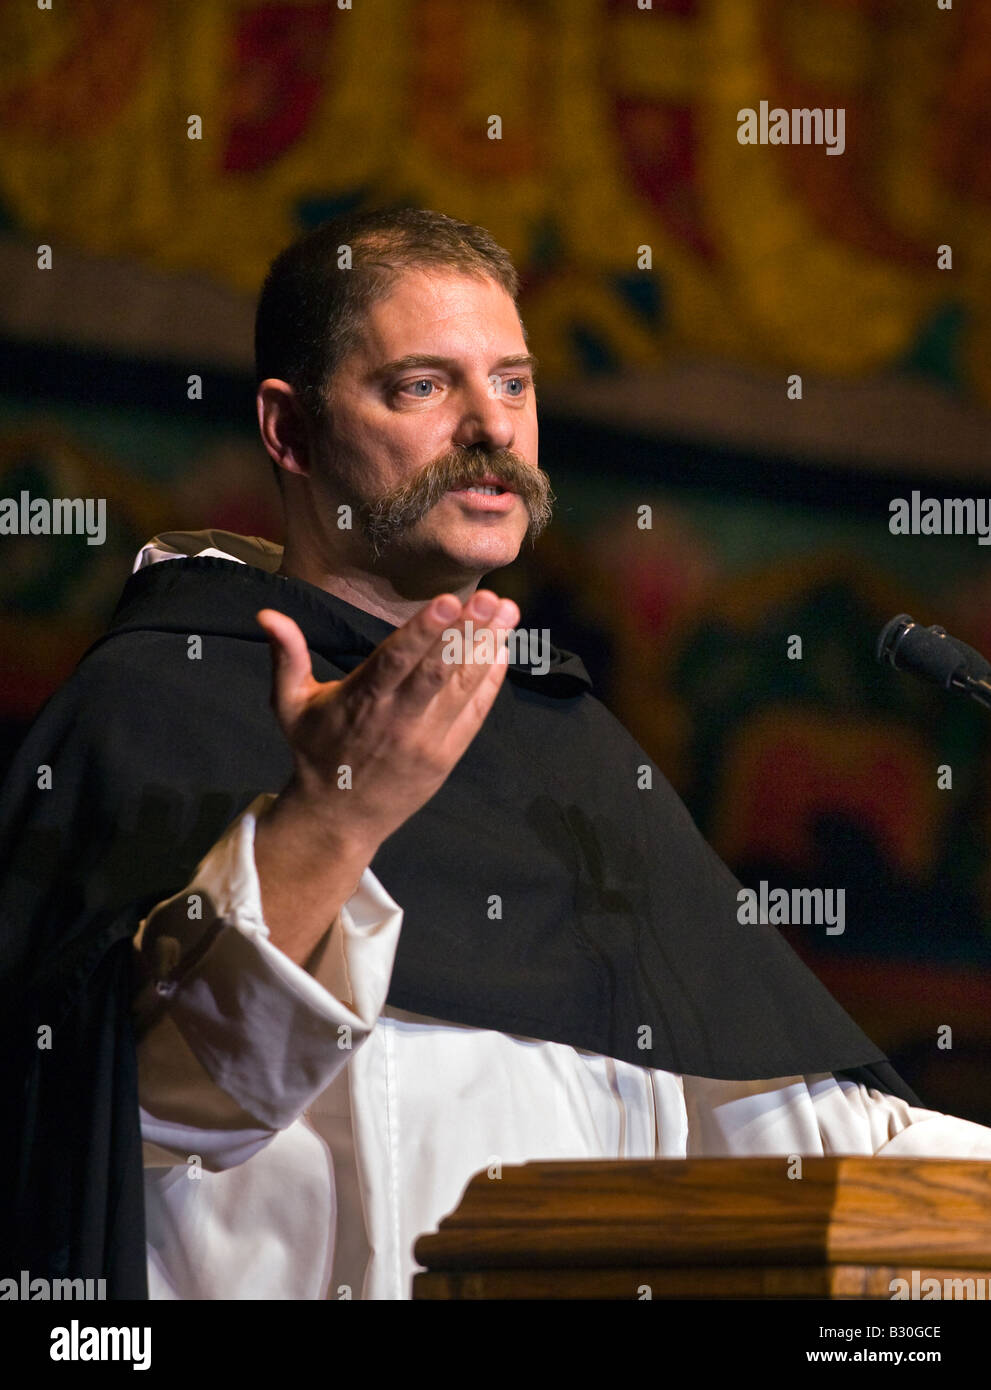 CATHOLIC FRIAR speaks at a DALAI LAMA teaching in October 2007 BLOOMINGTON INDIANA - Stock Image